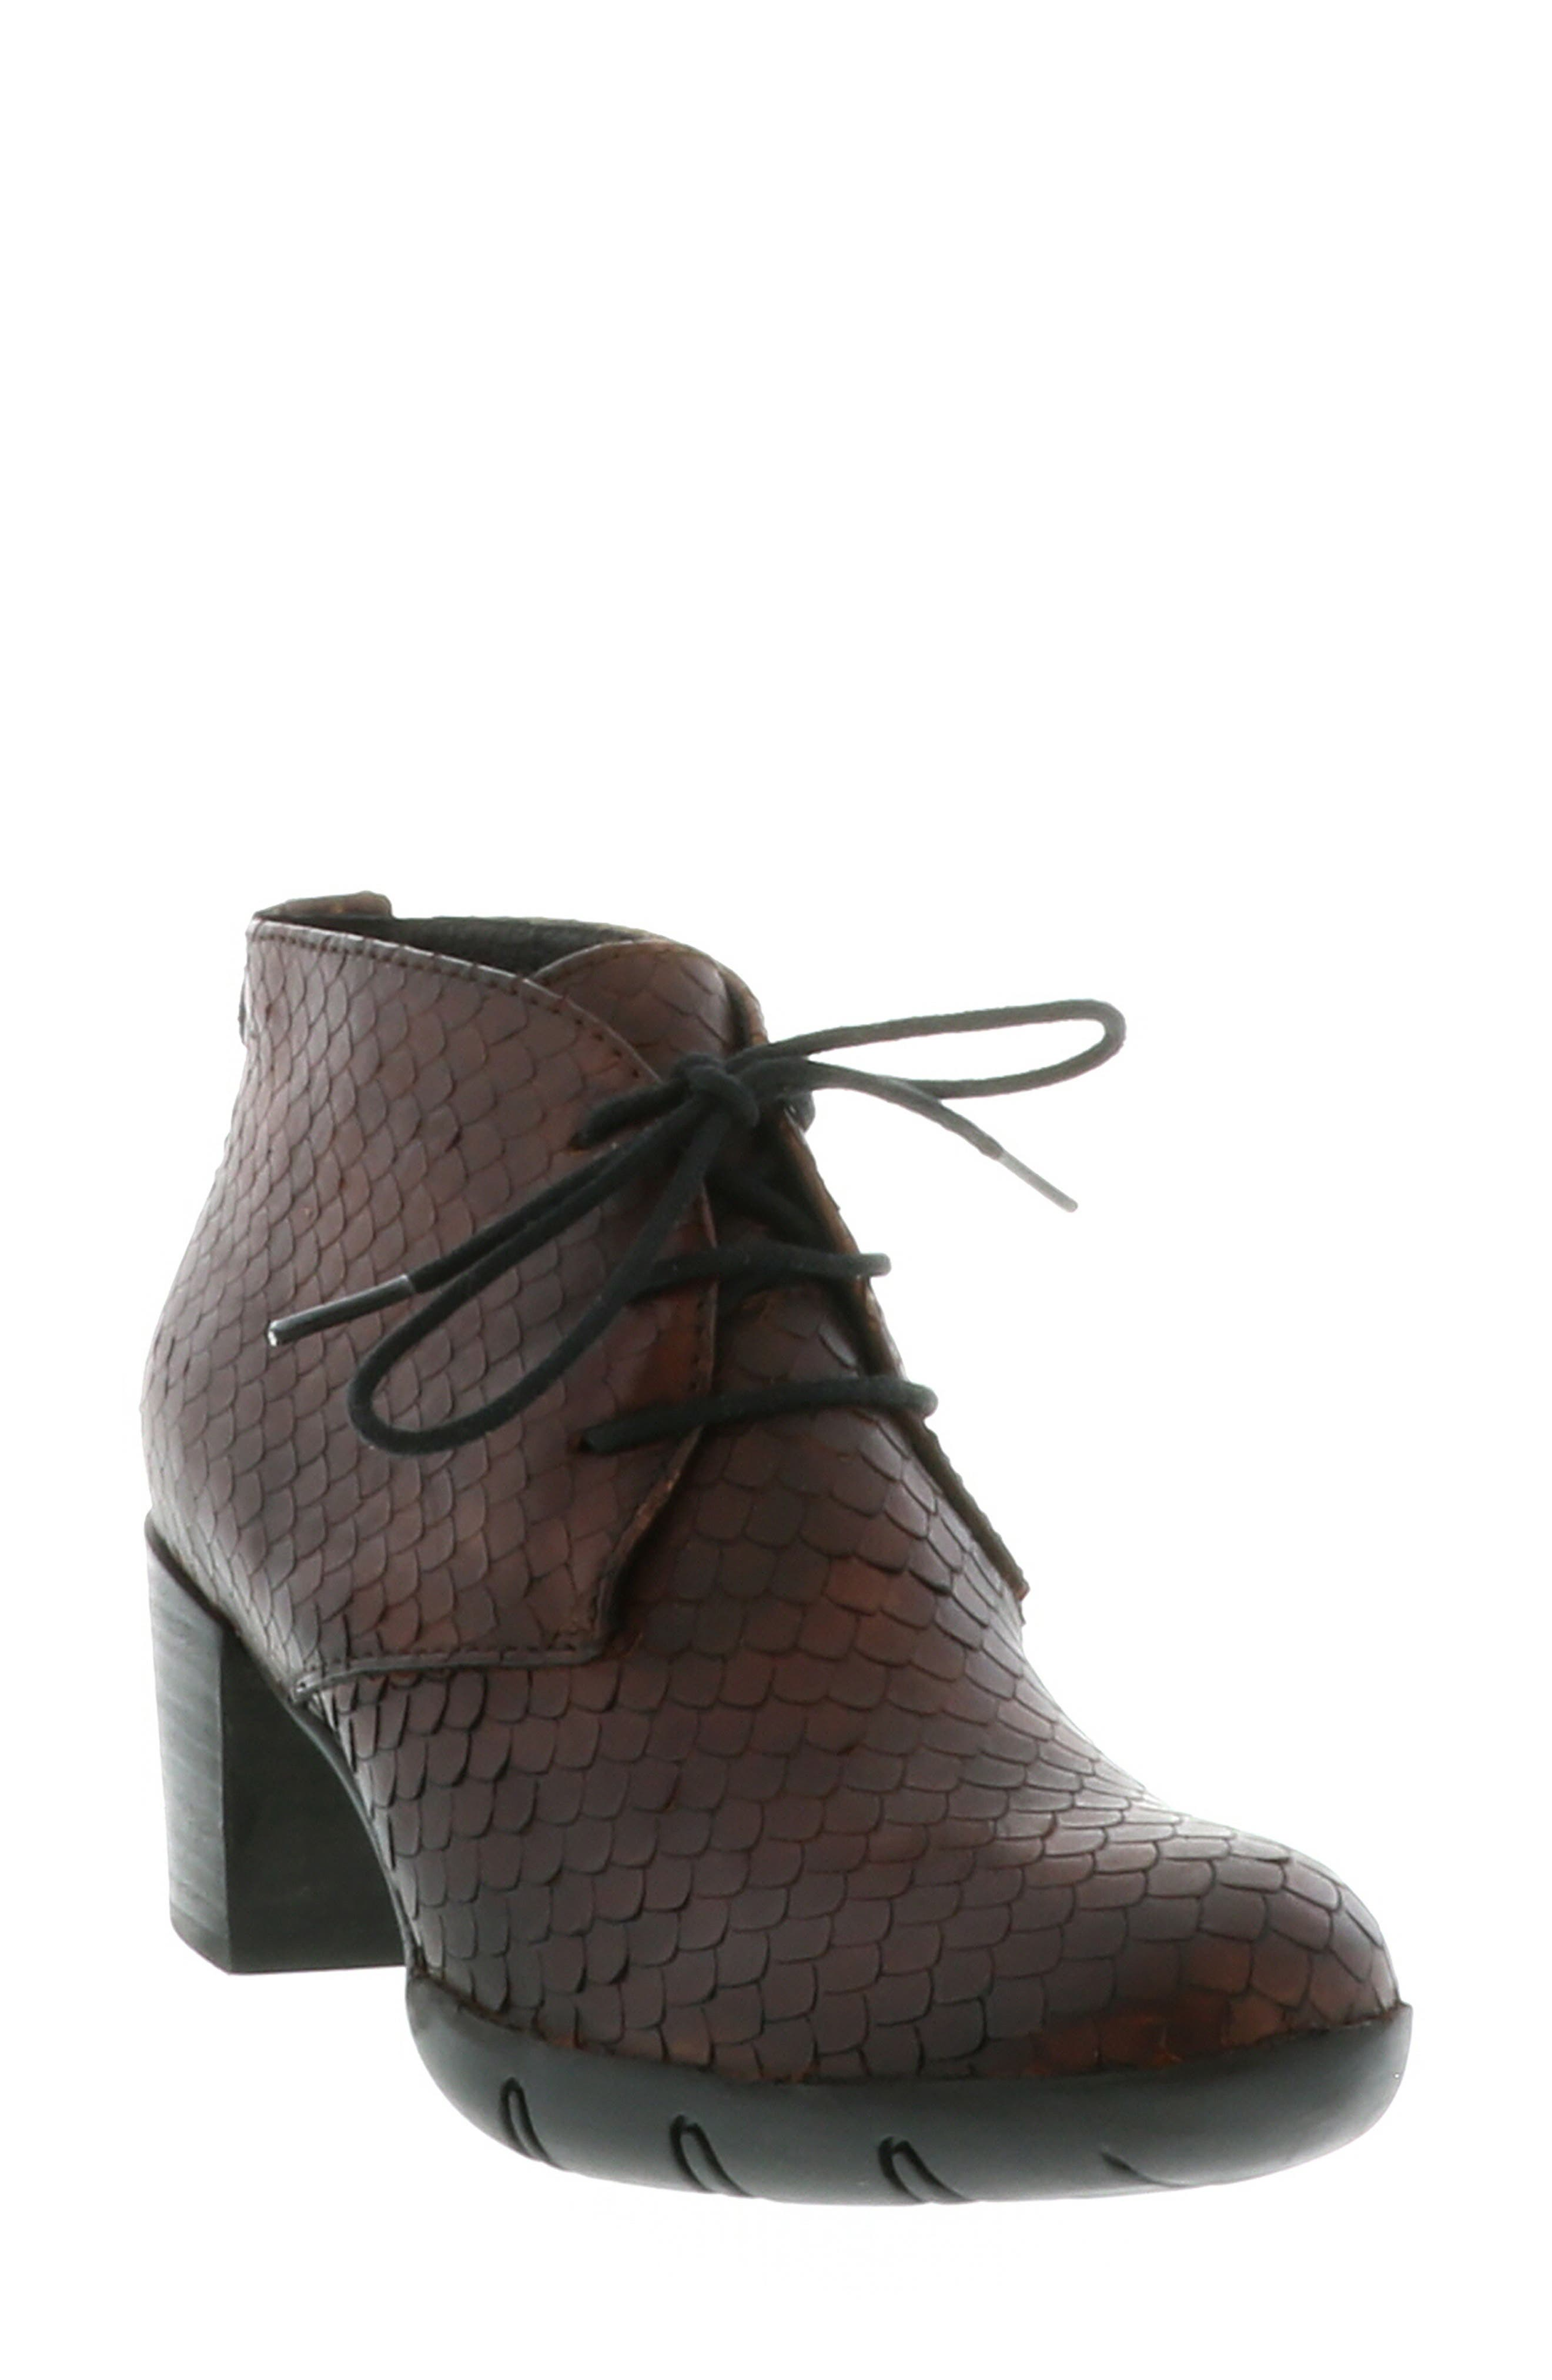 Wolky Bighorn Bootie - Brown